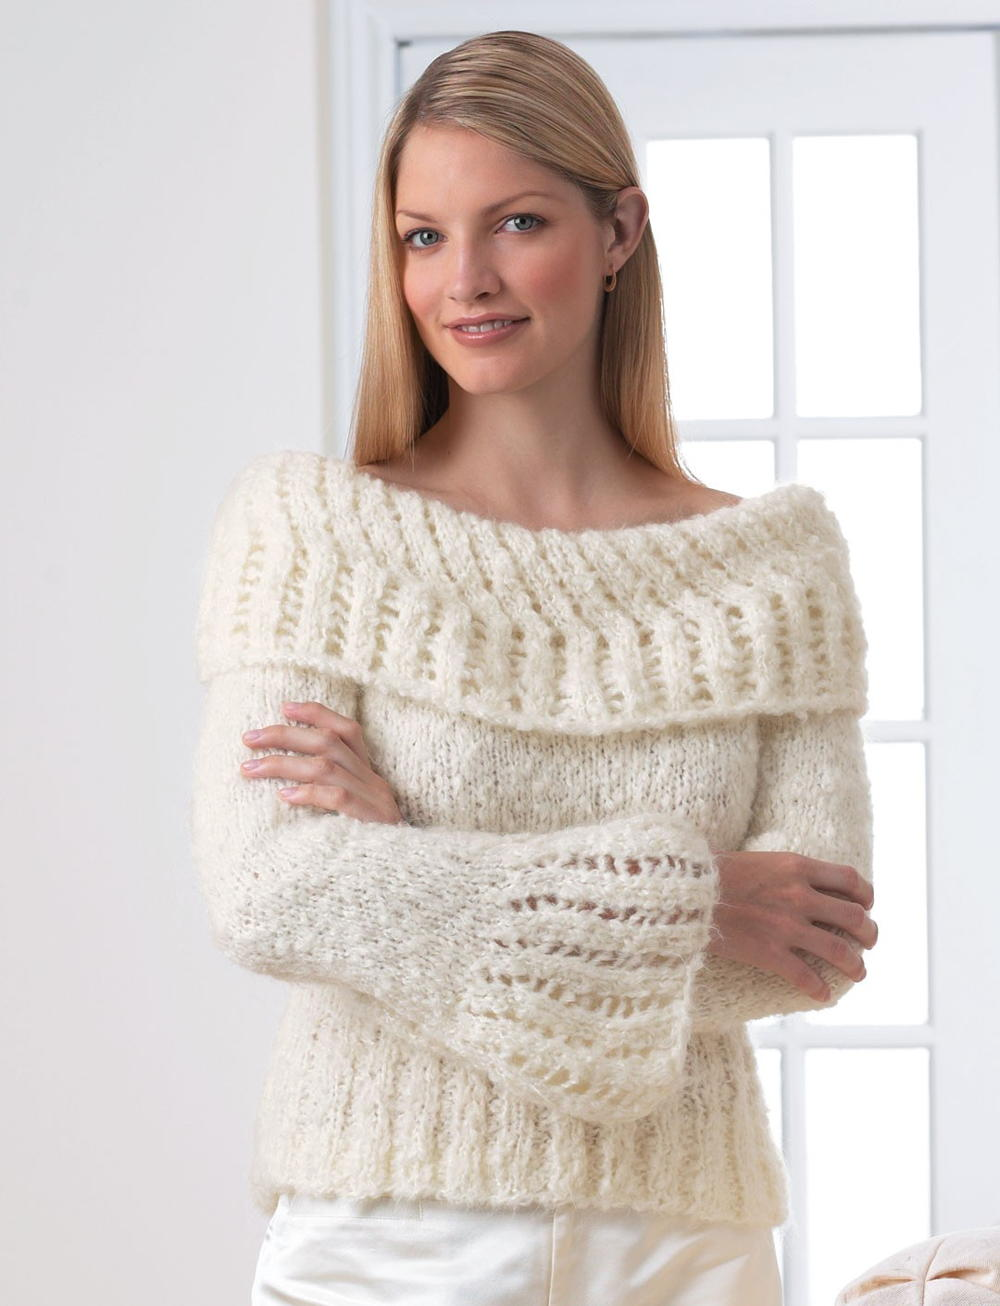 Knitting Sweaters For Girls : Lacework sweater allfreeknitting